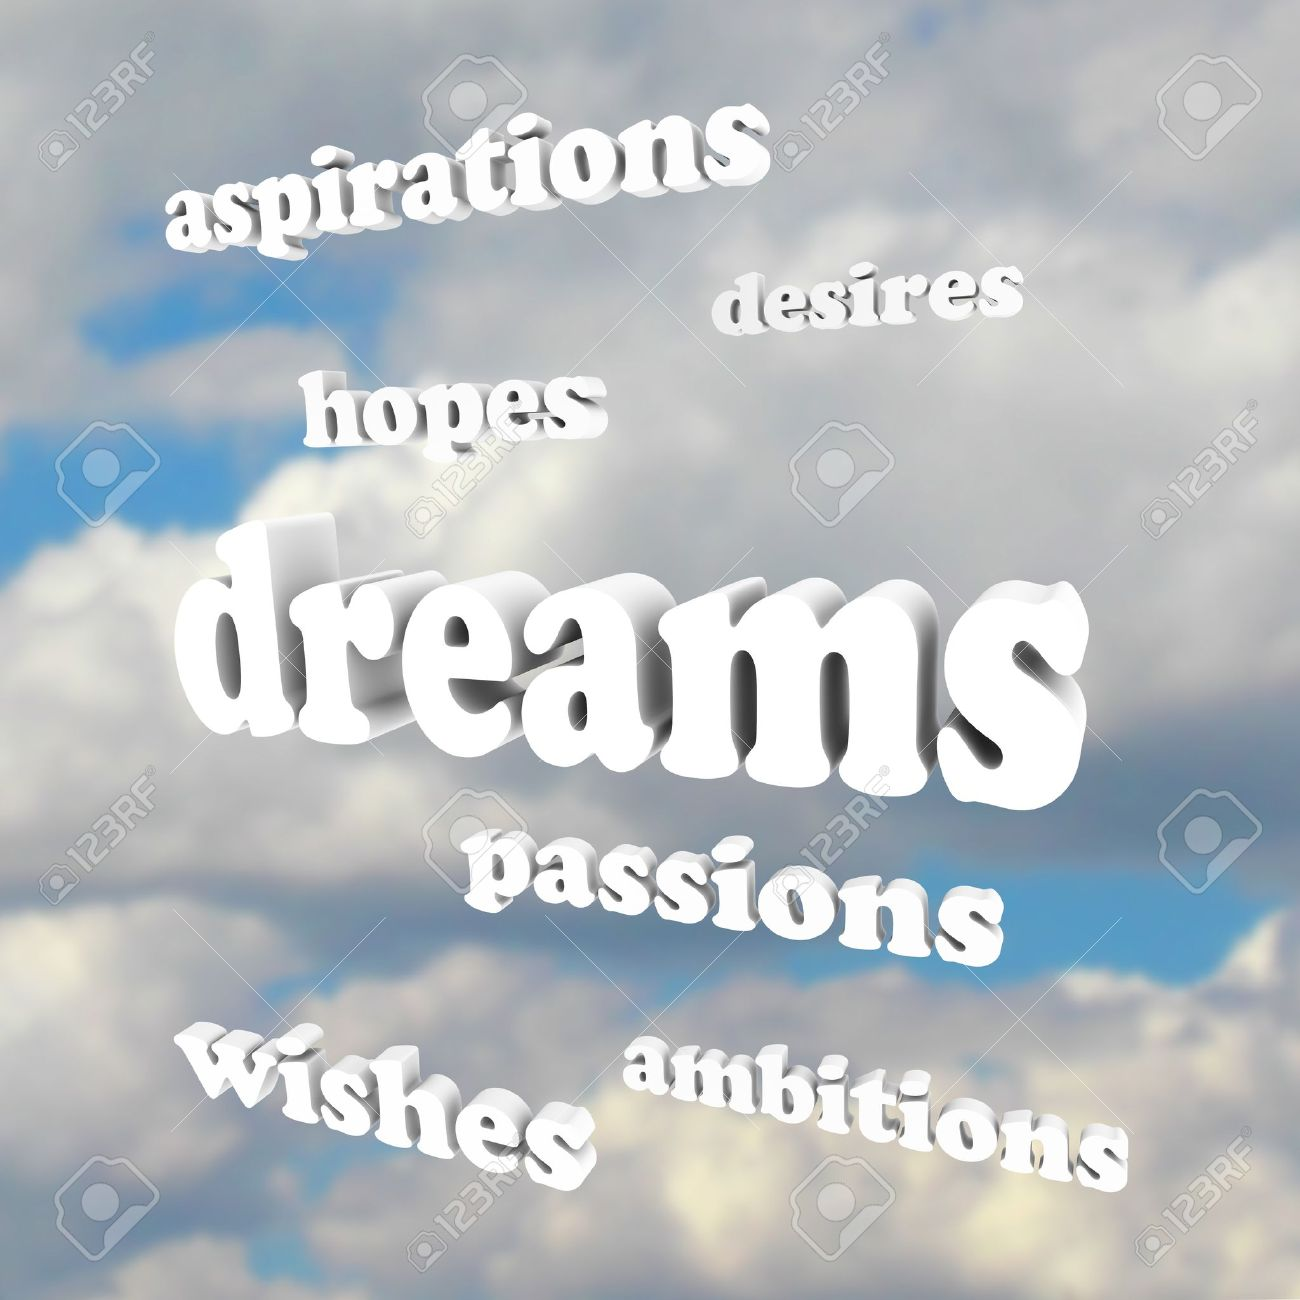 Dream And Aspirations Essays